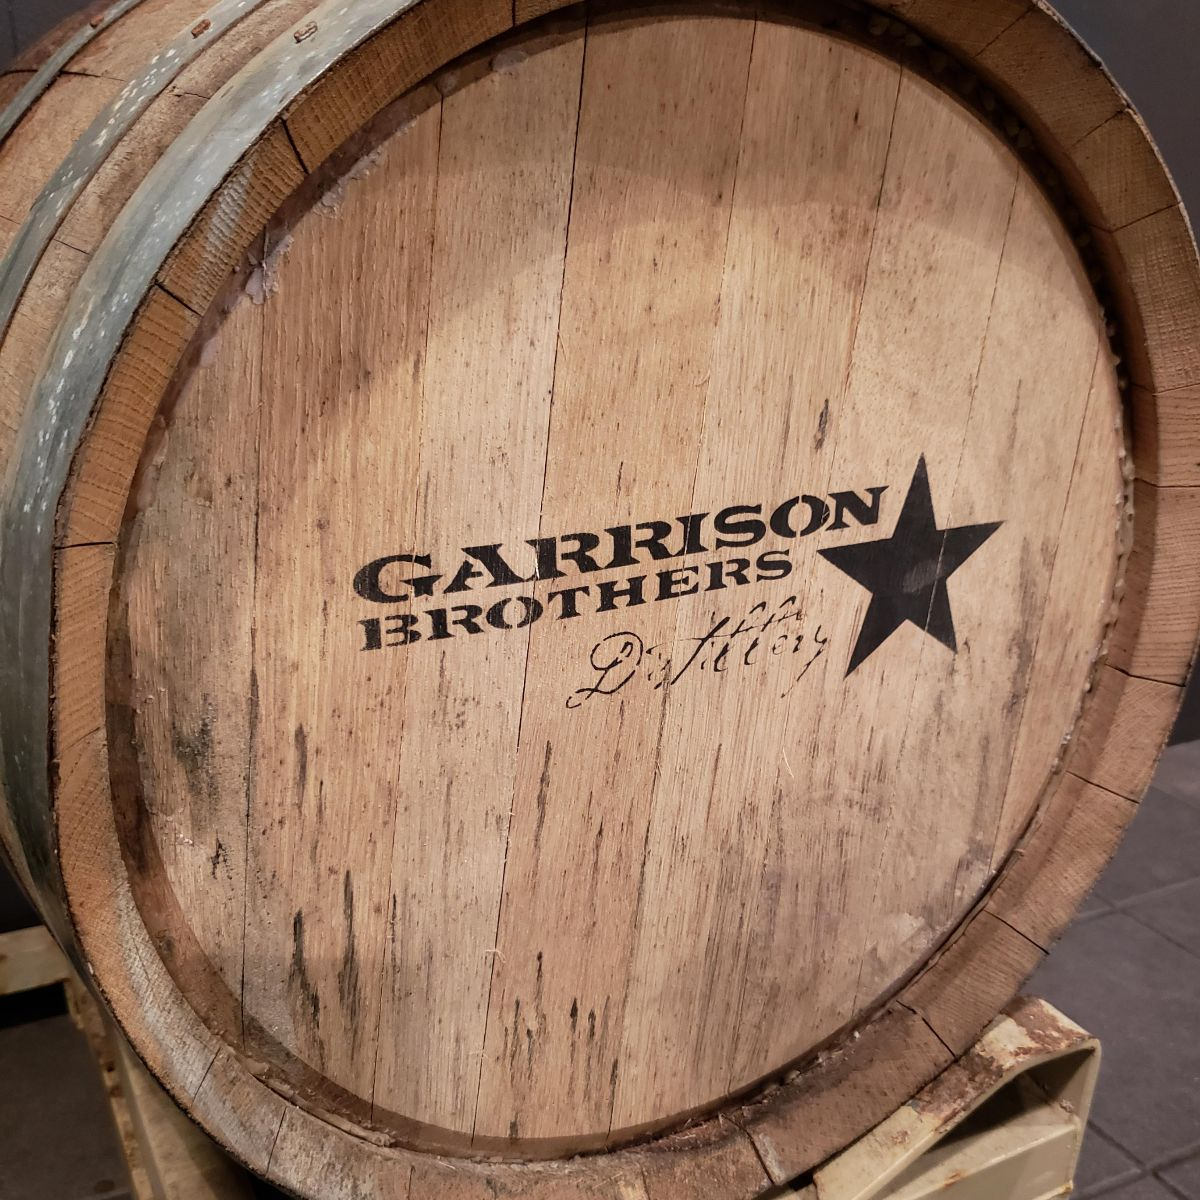 Garrison Bros. - We've released the first in our Garrison Brothers Bourbon Barrel collaboration - a barrel-aged Can You Dig It. We're also about to release a limited barrel-aged Supernaut. Currently, the barrels are full of the cookies-n-cream Supernaut variation. Keep an eye on our Insta for the release announcements through the year.